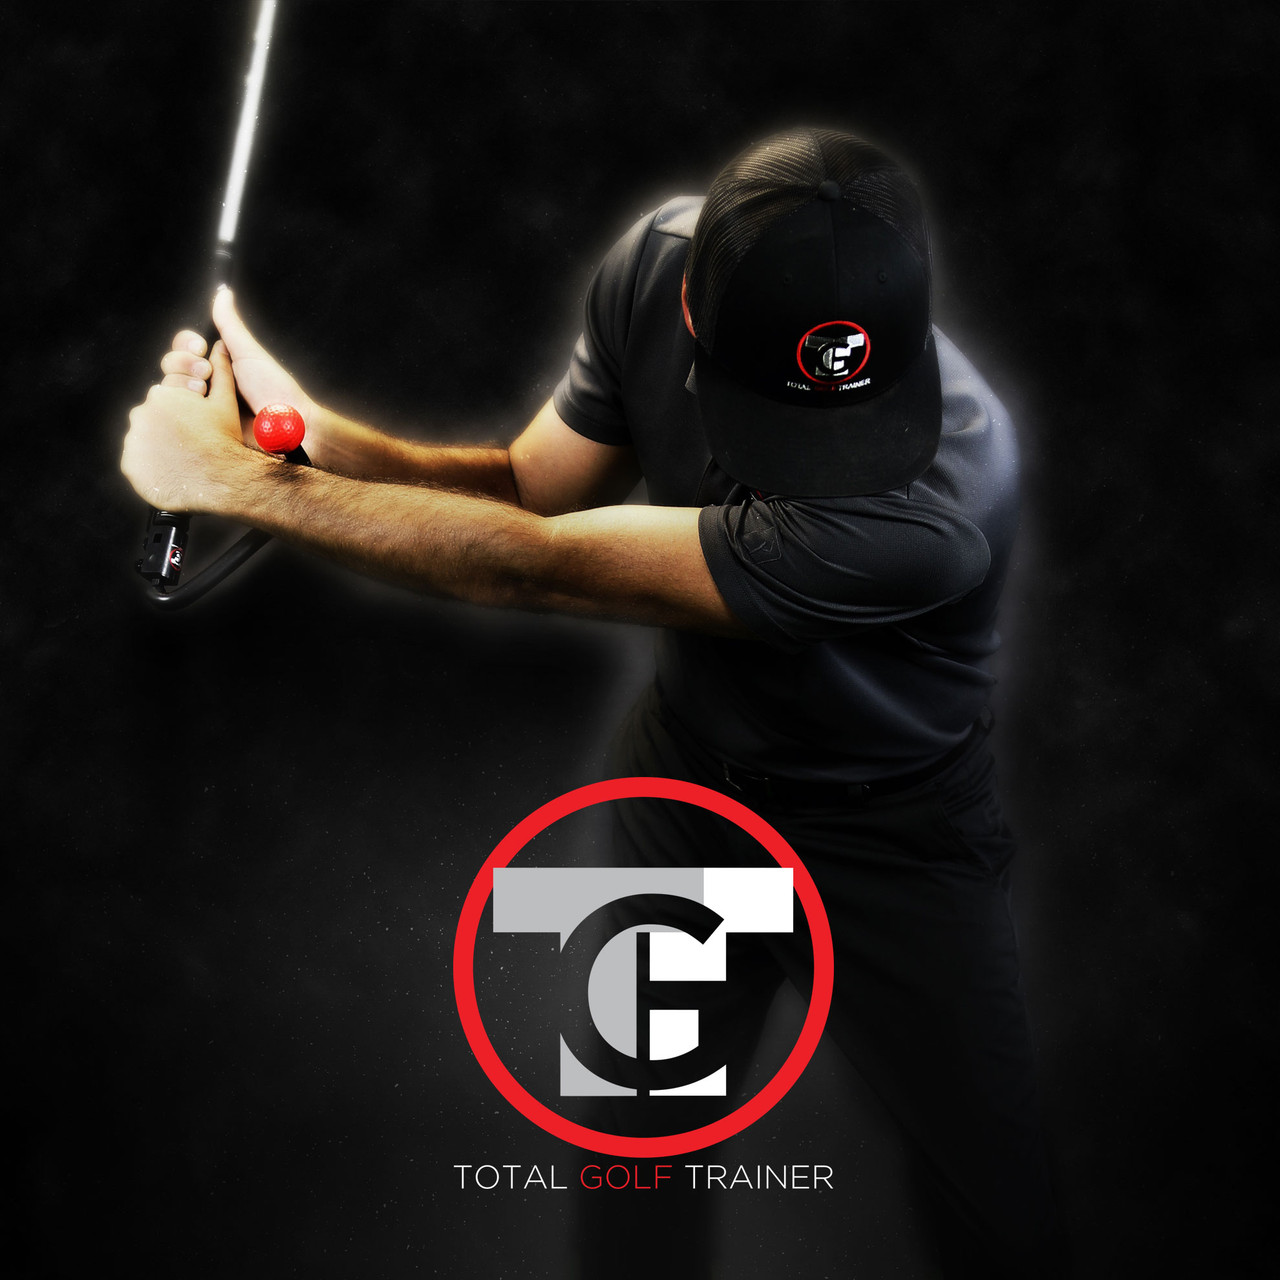 Top 3 Settings for the NEW Total Golf Trainer V2